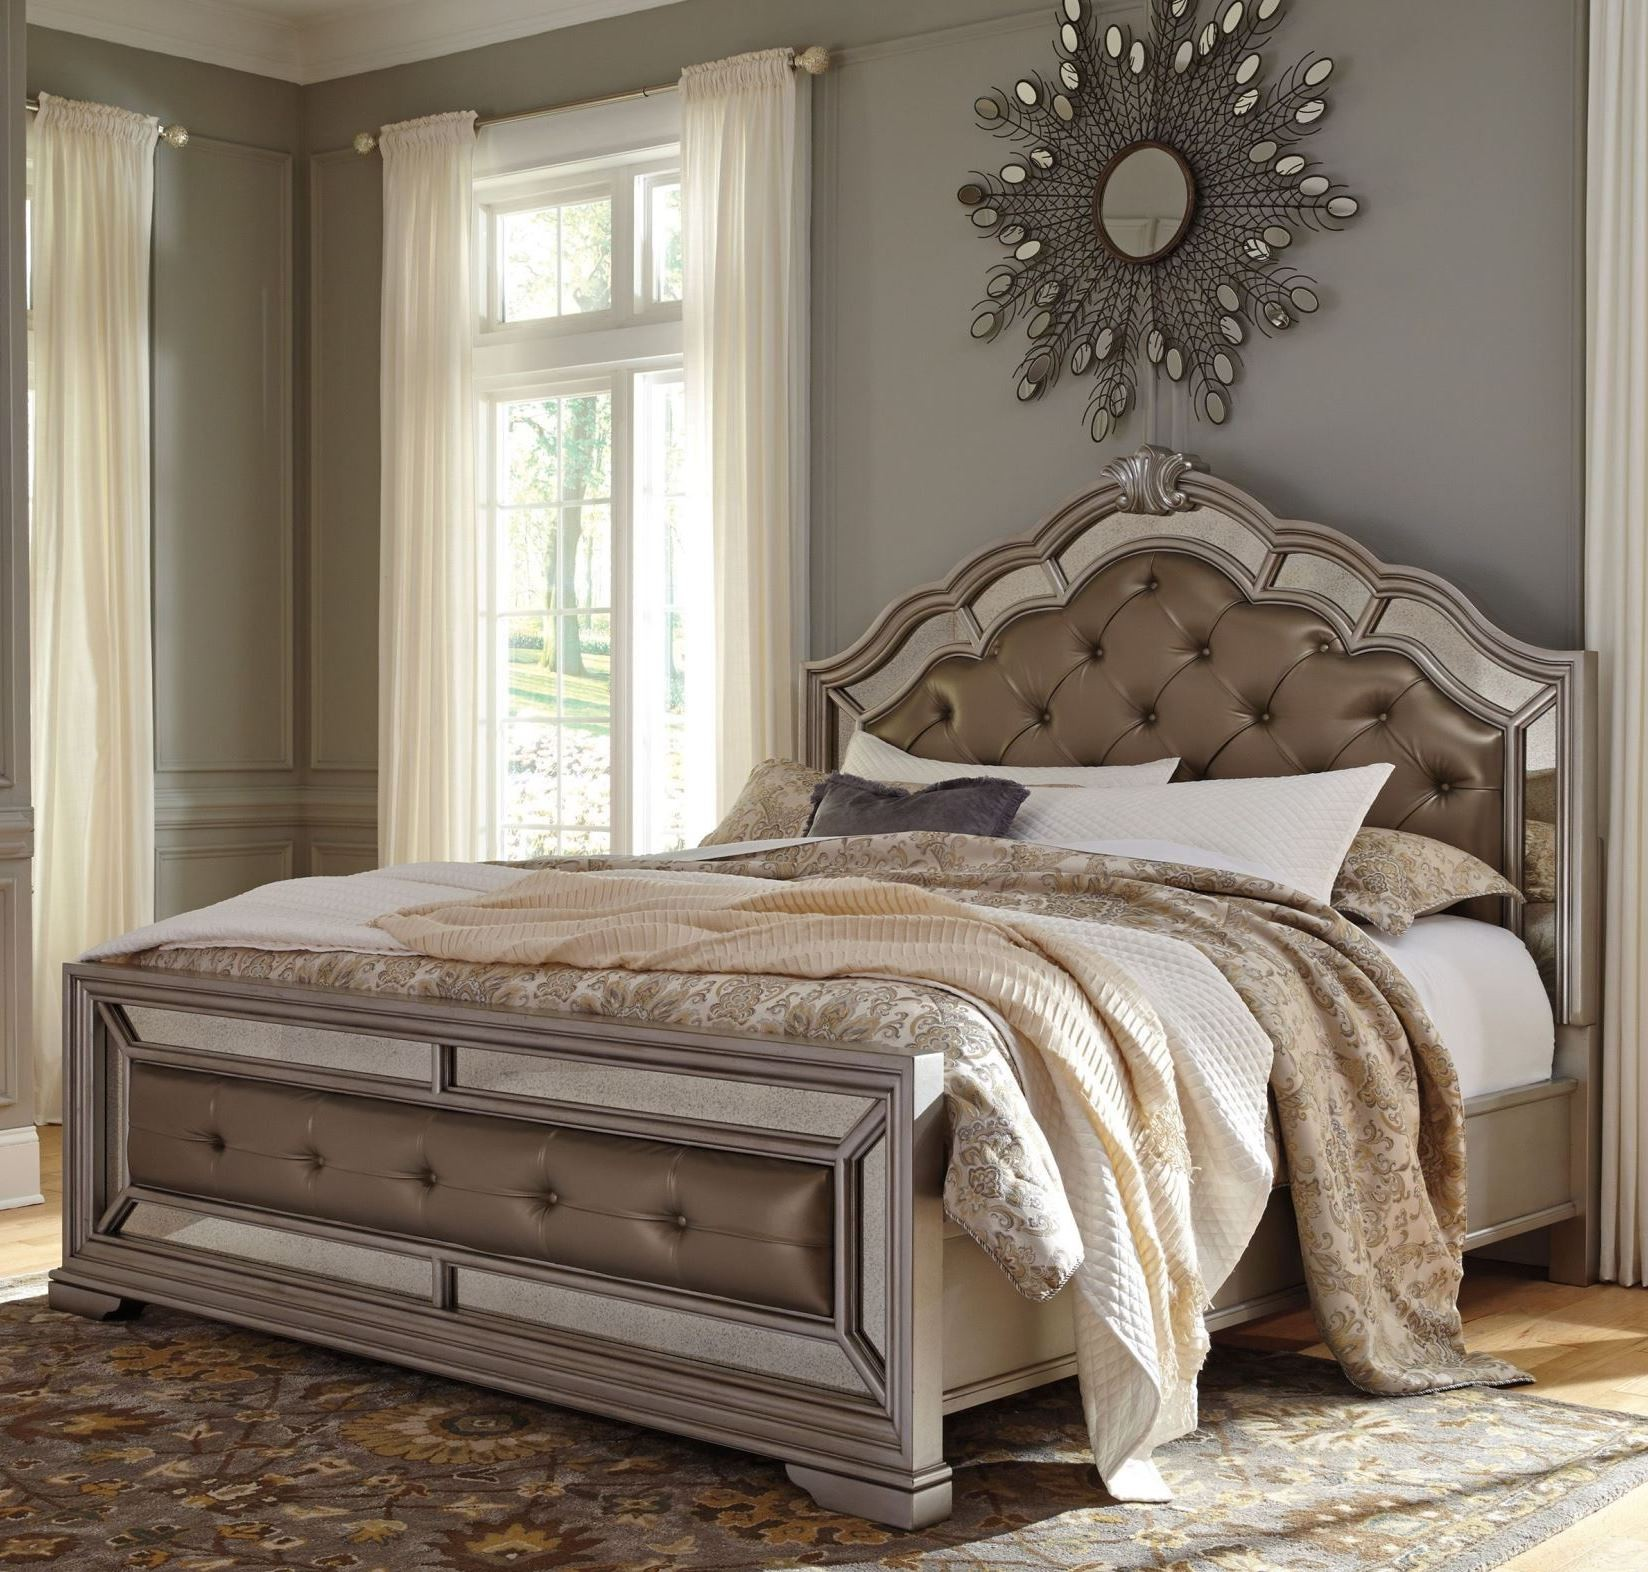 Birlanny Silver Upholstered Panel Bedroom Set, B720-57-54